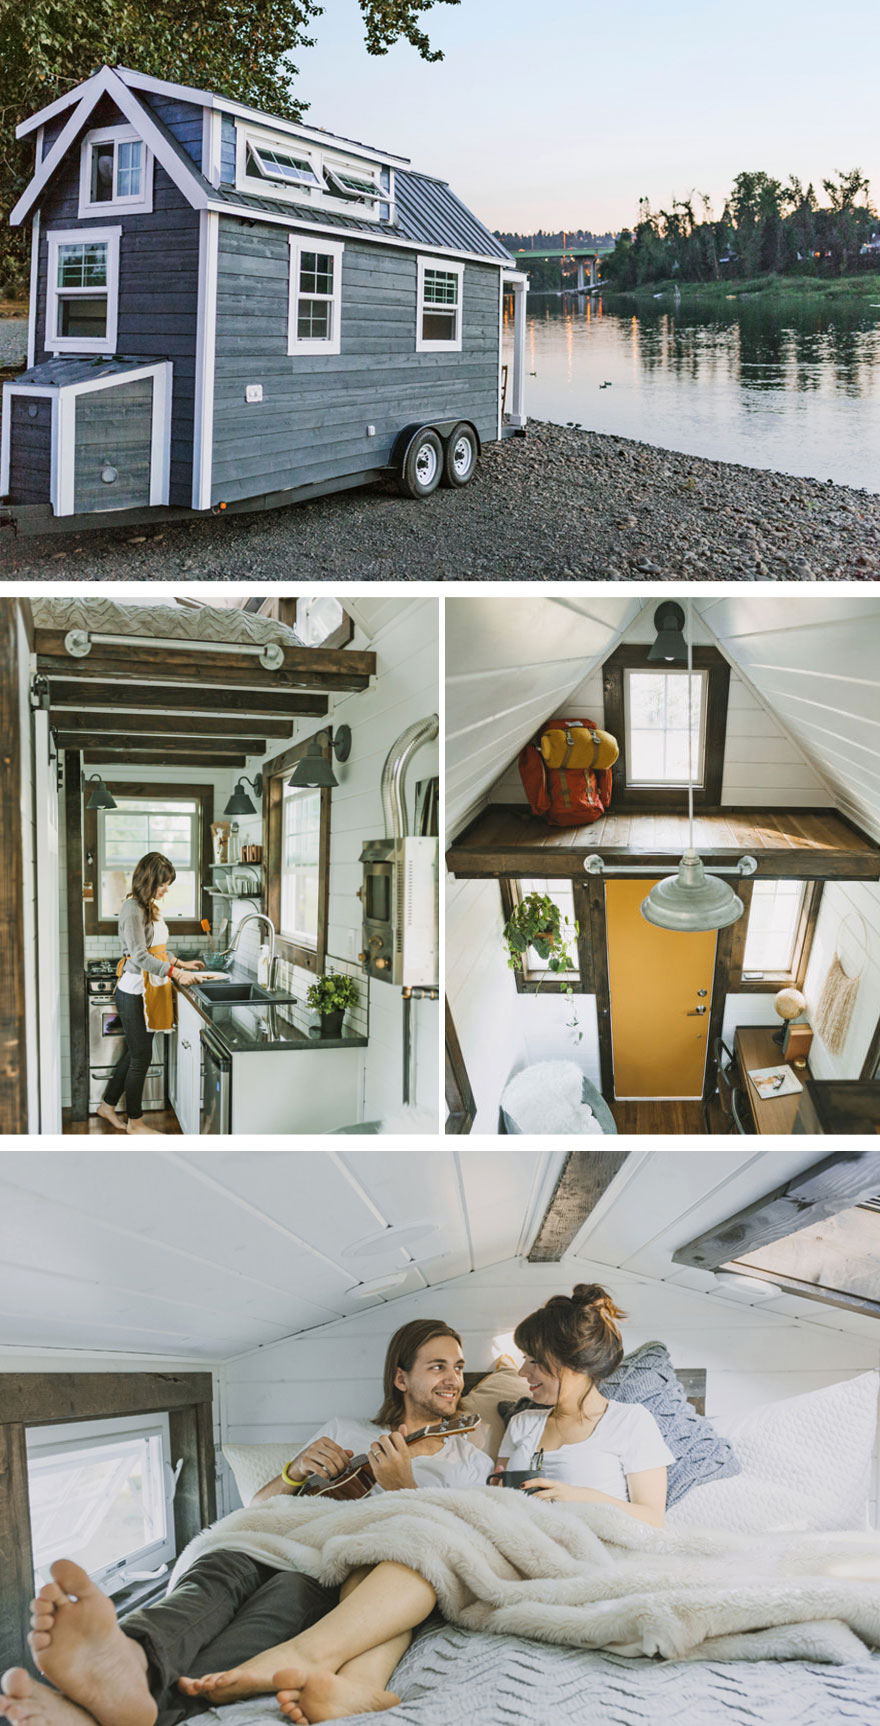 AD-Small-Houses-Saving-Space-17